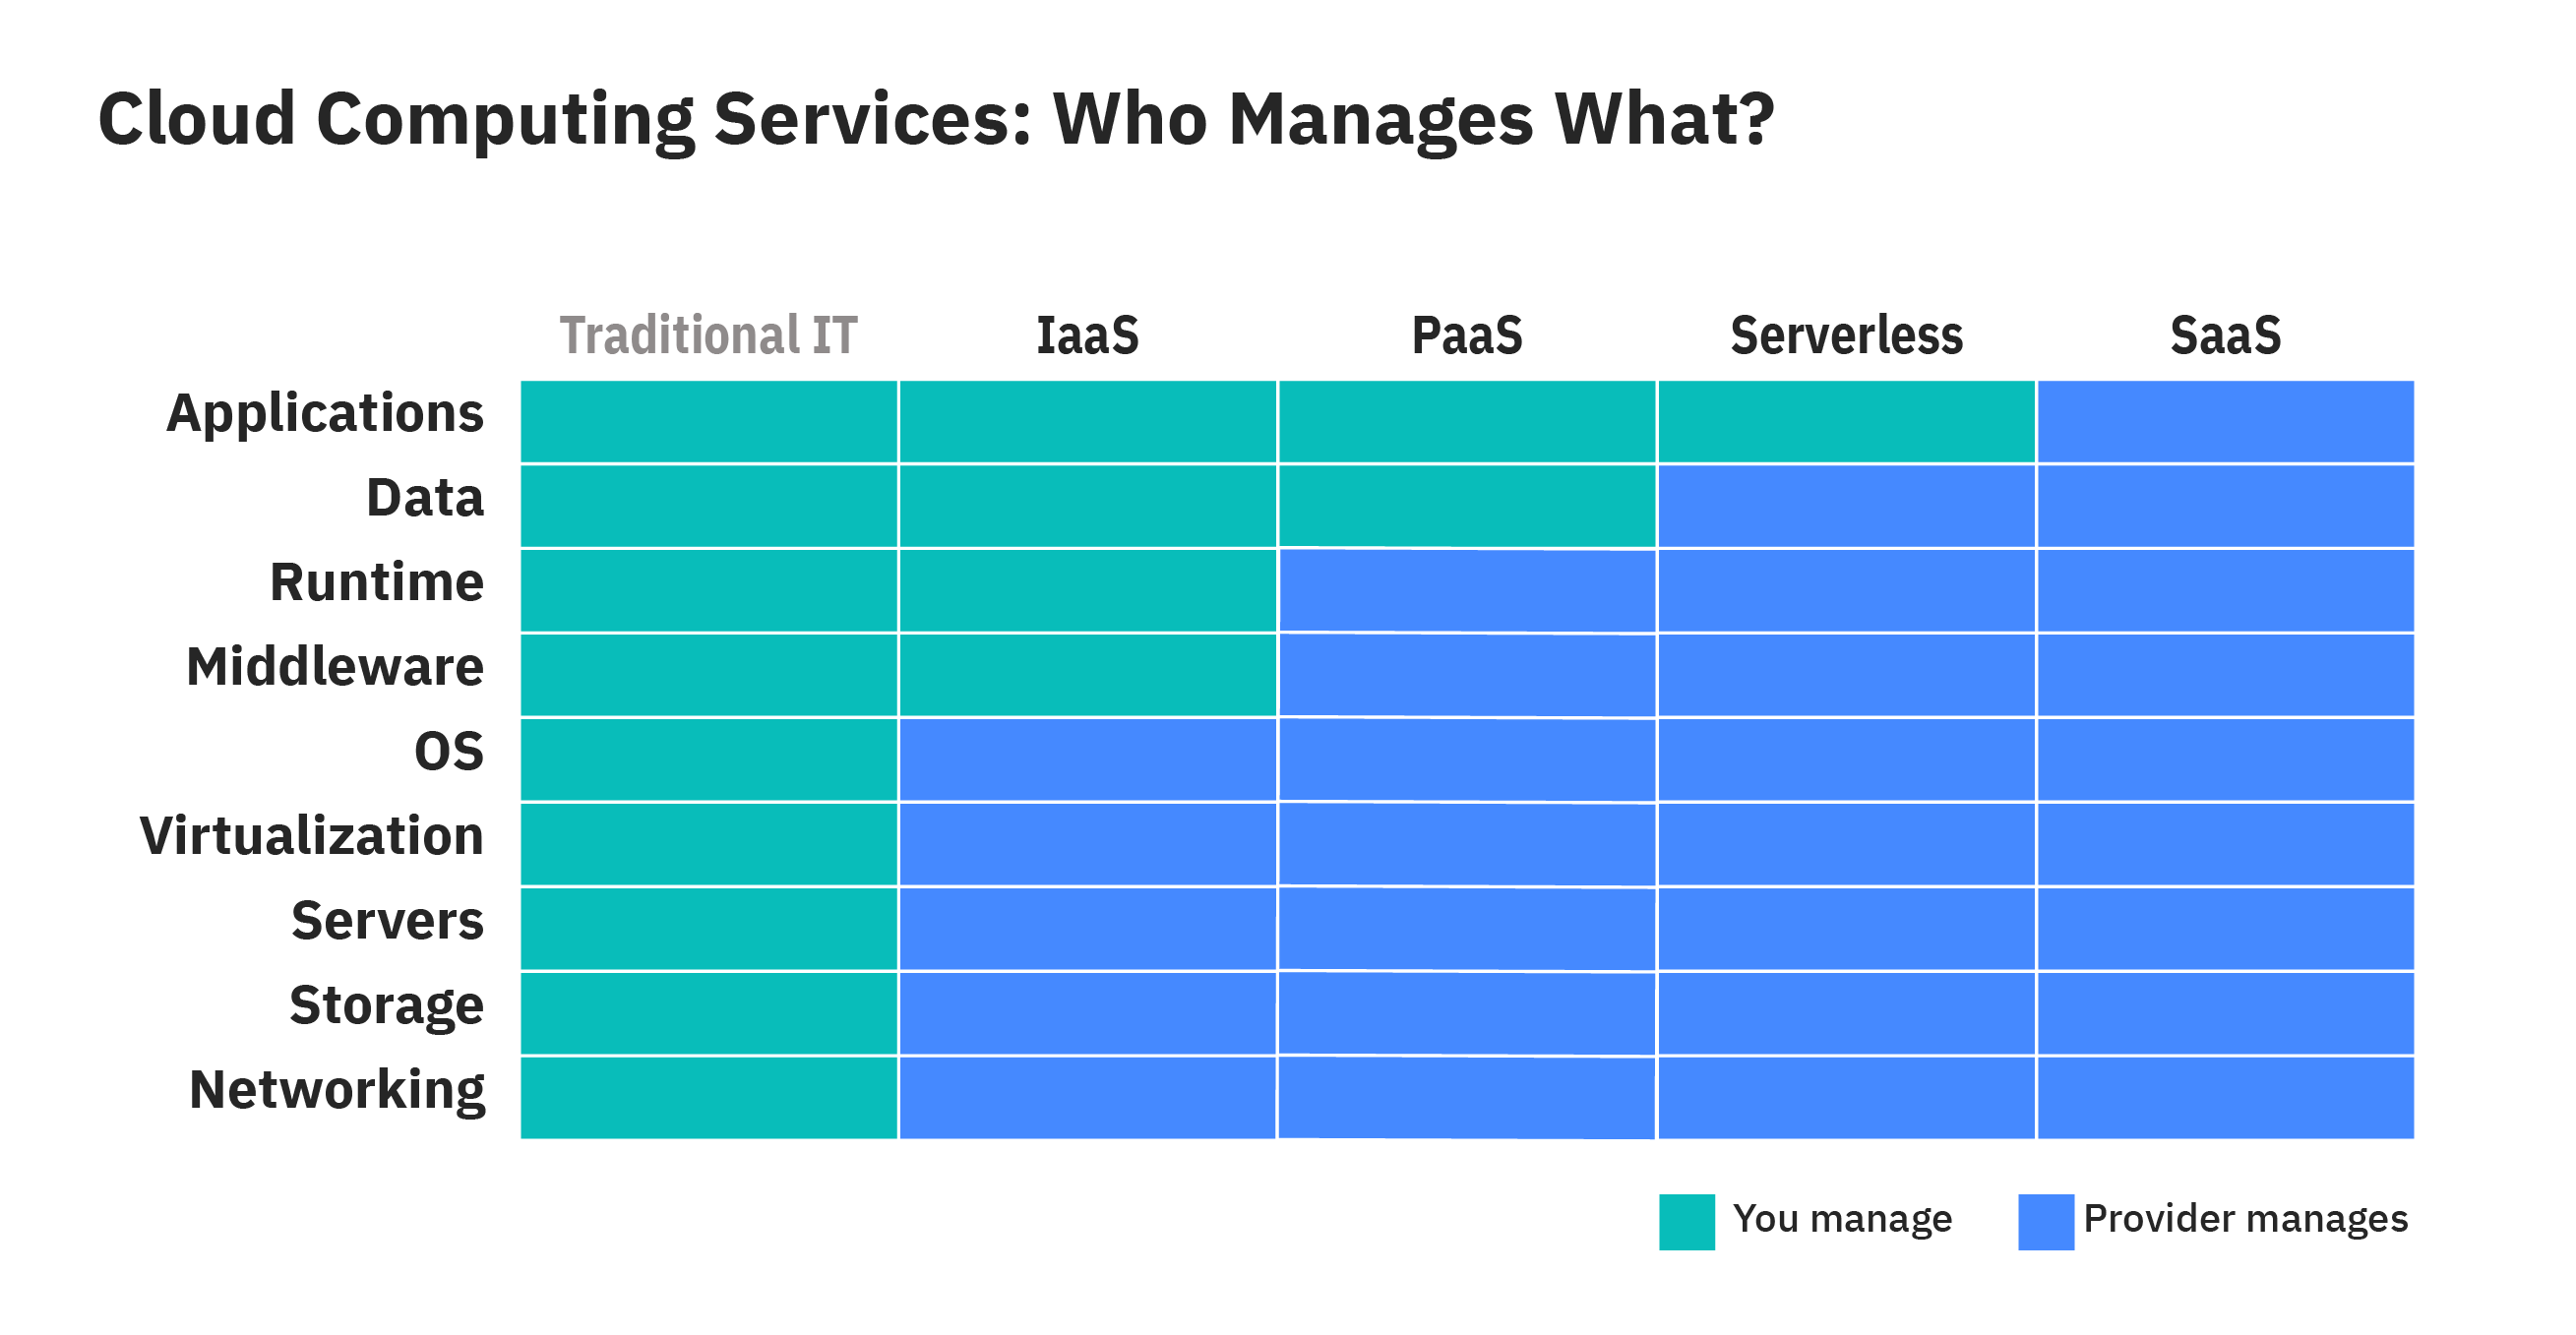 infographic showing who manages what in cloud computing services